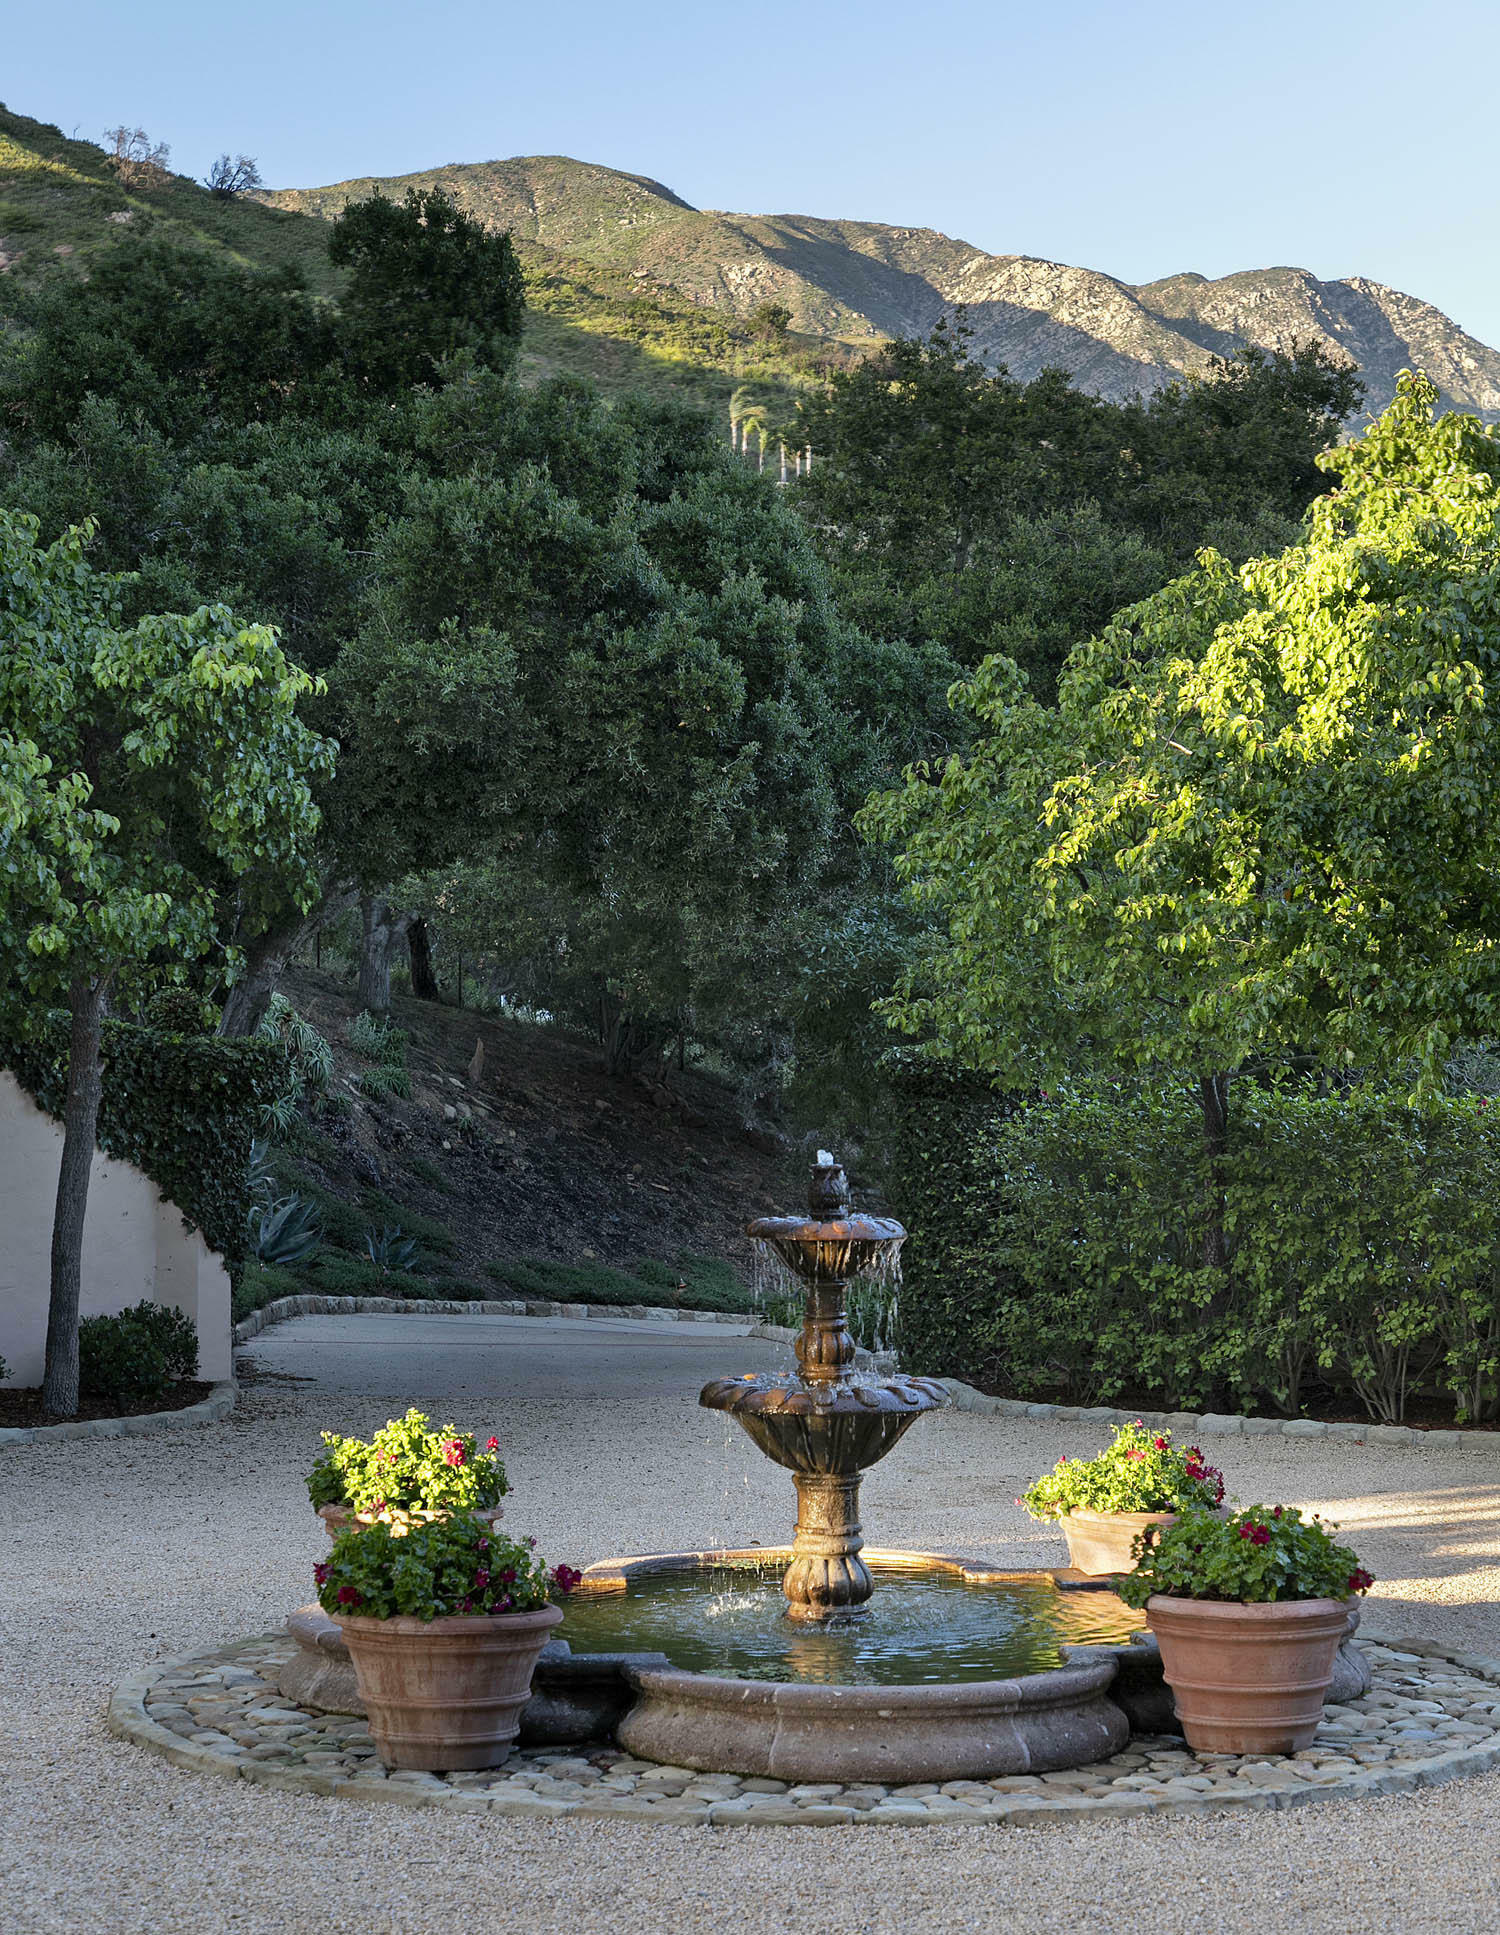 Montecito - Real Estate and Apartments for Sale | Christie's